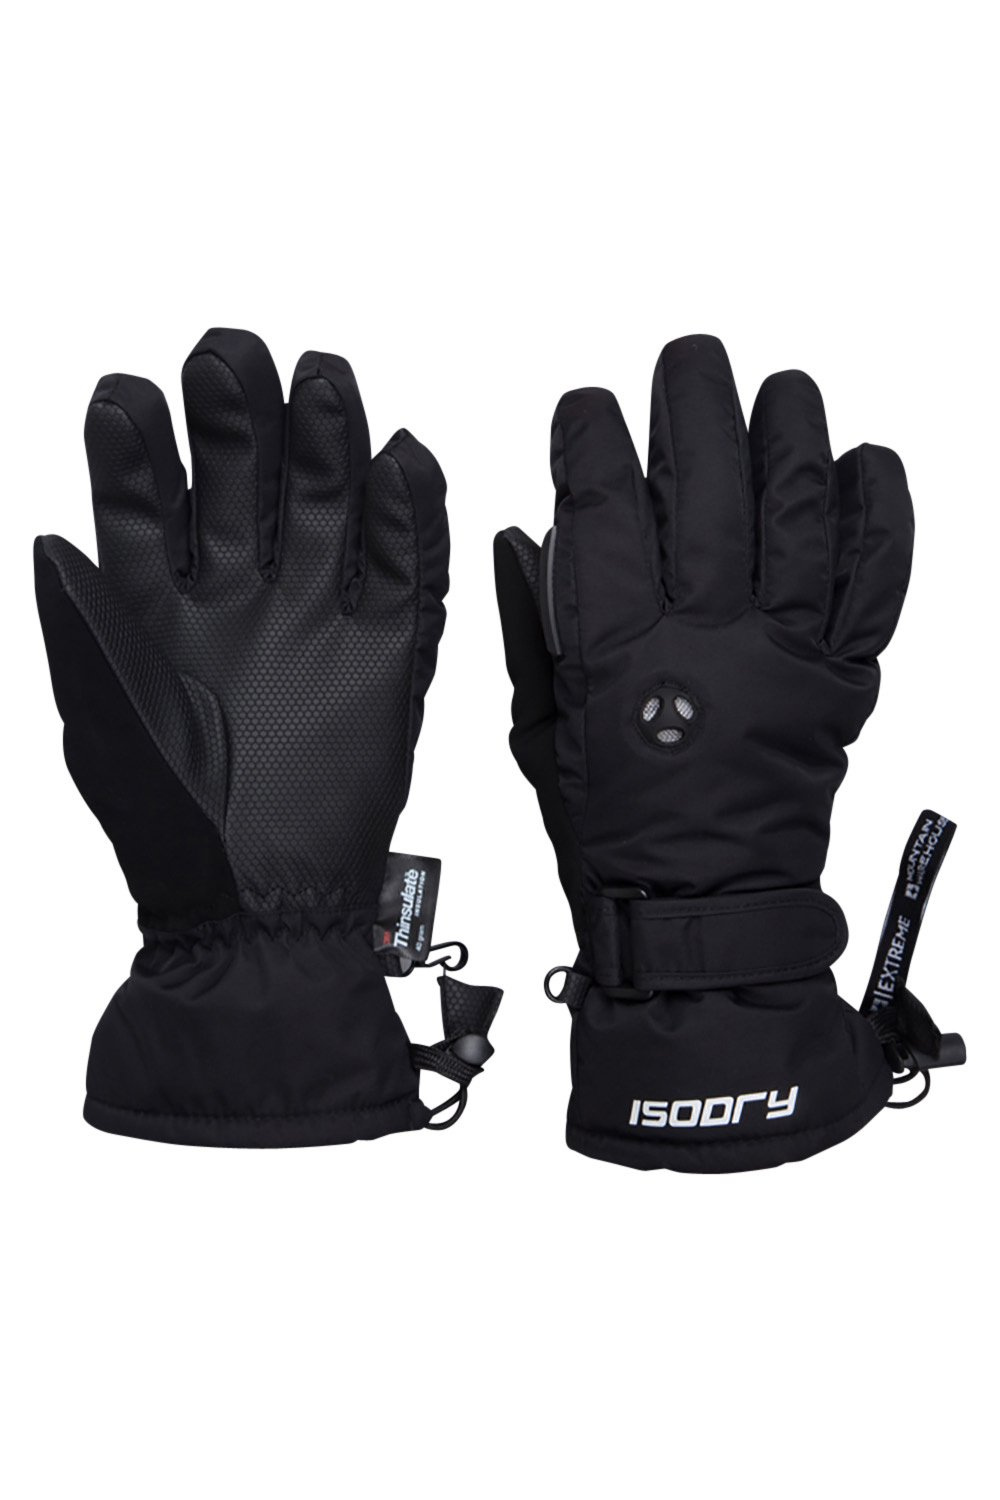 Extra small ladies leather gloves uk - Mountain Warehouse Extreme Waterproof Womens Ski Gloves